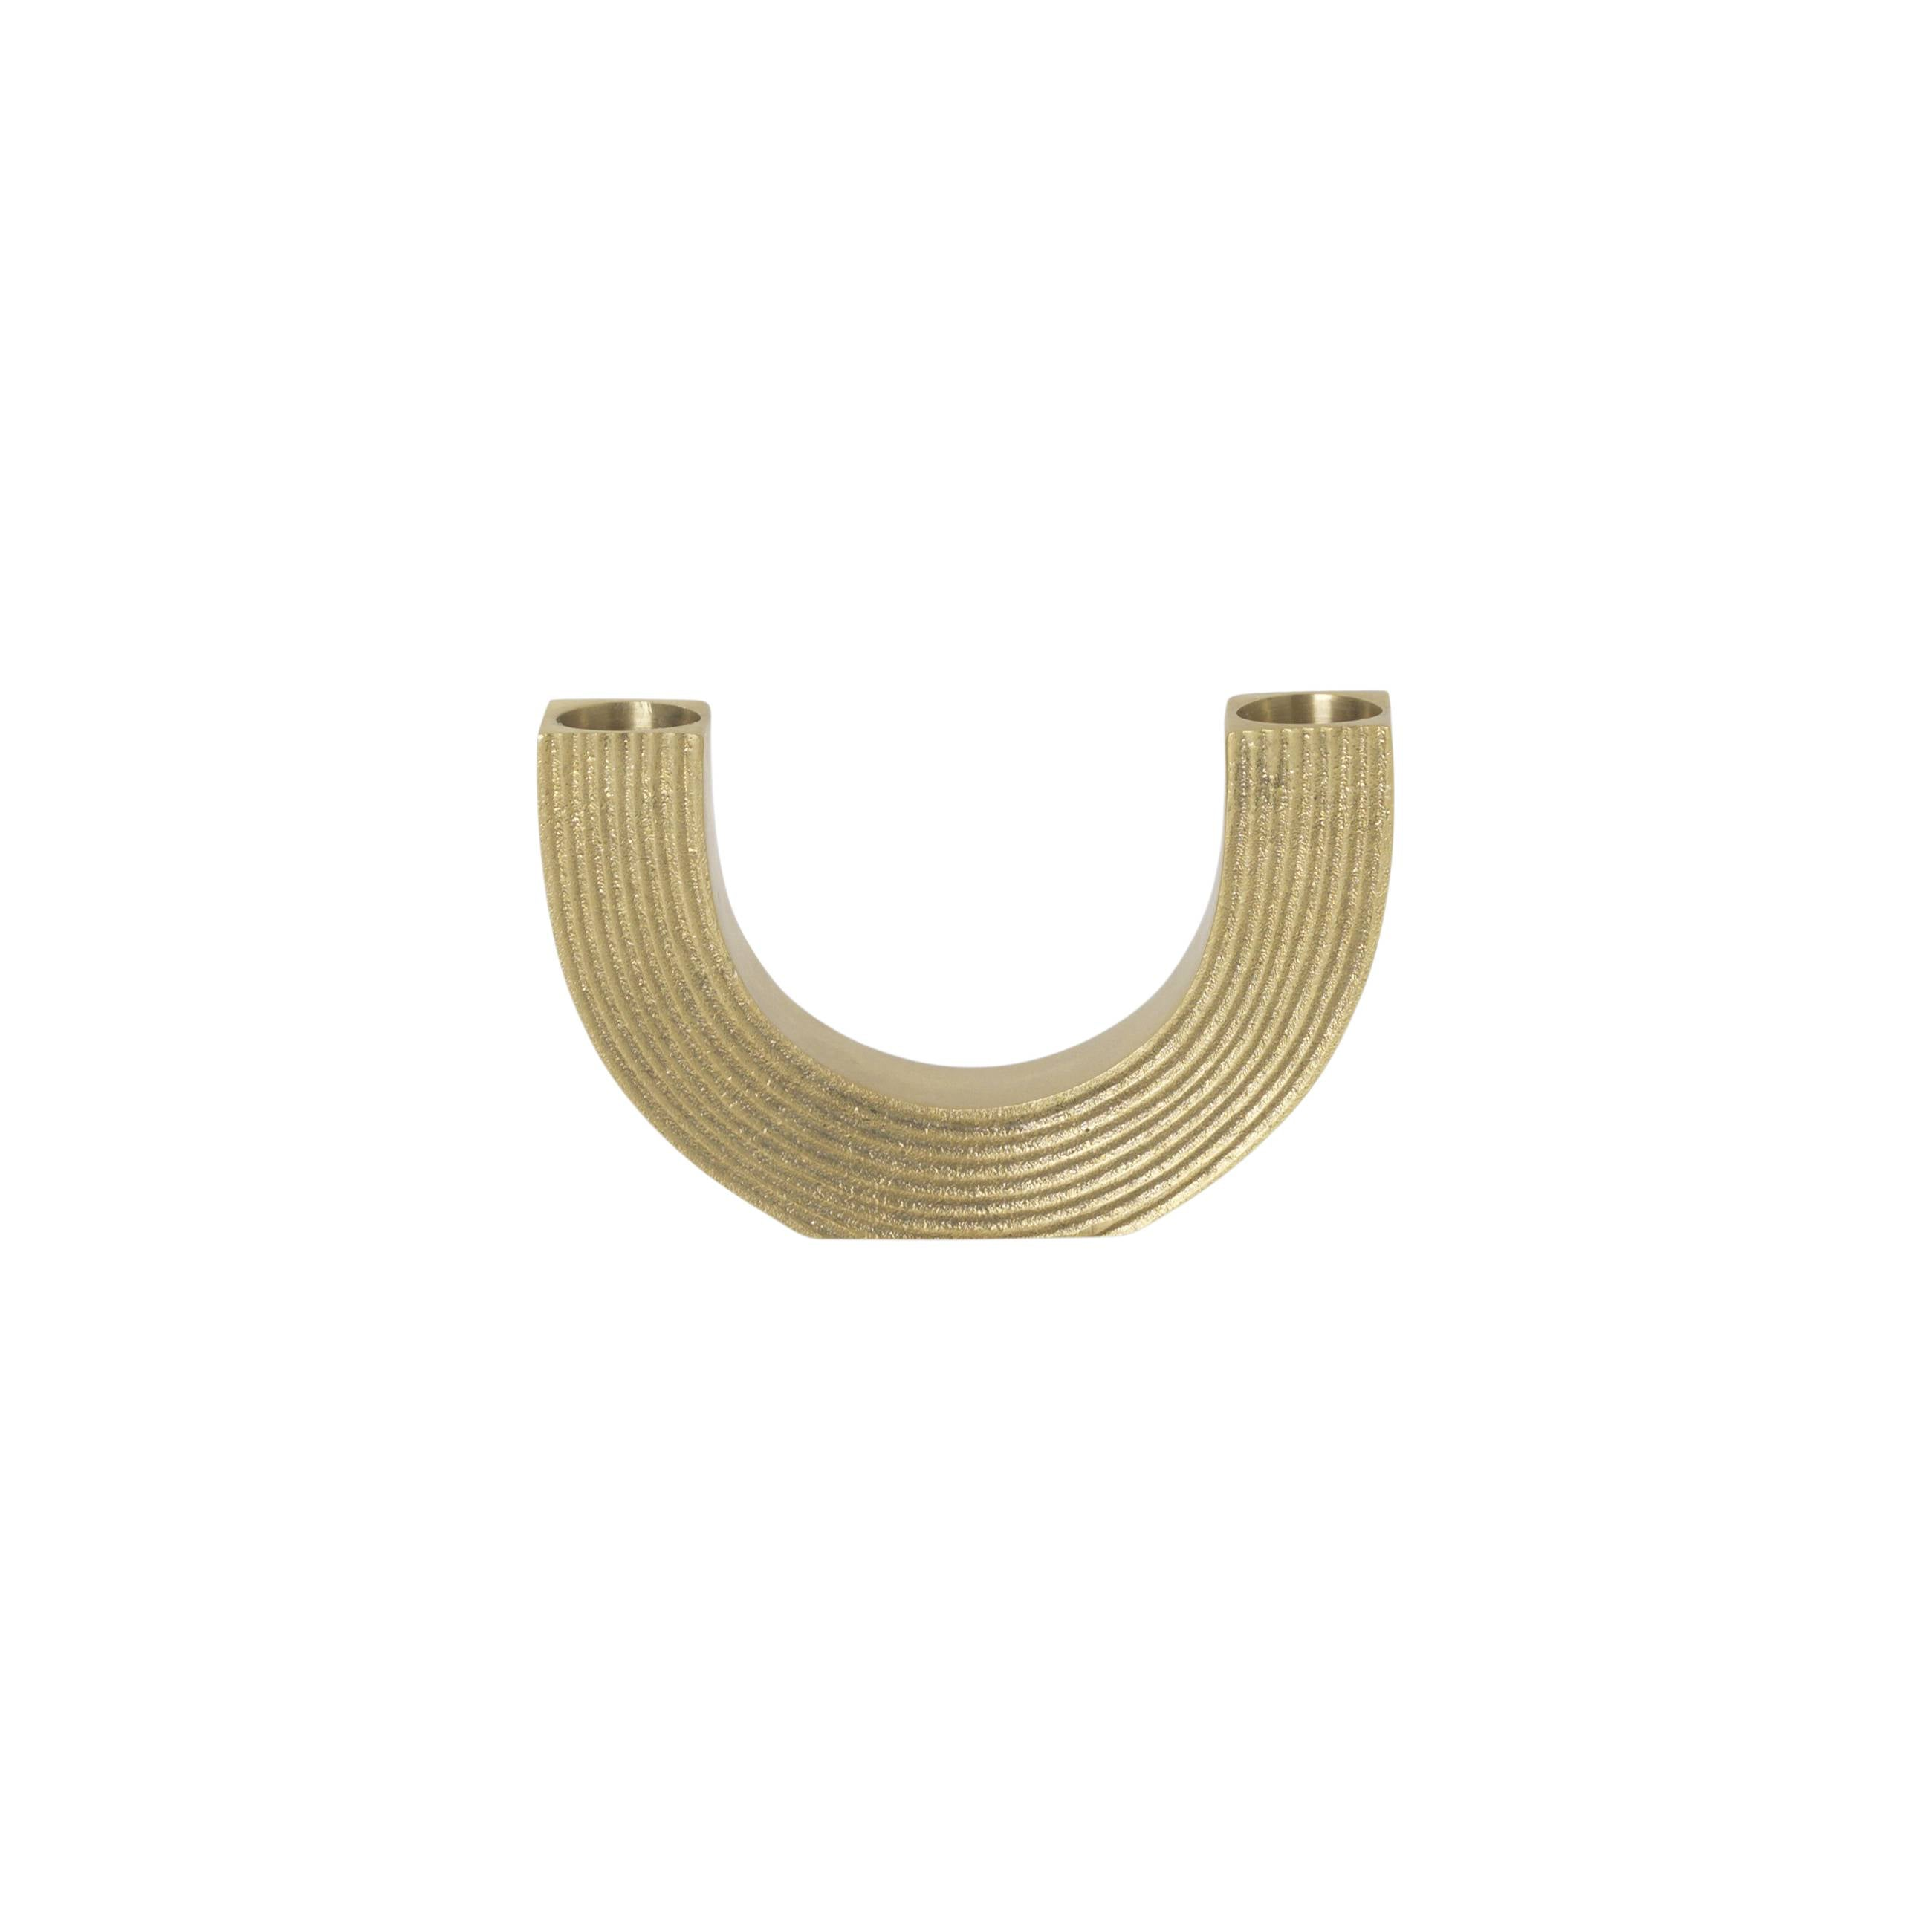 Arch Candle Holder: Brass